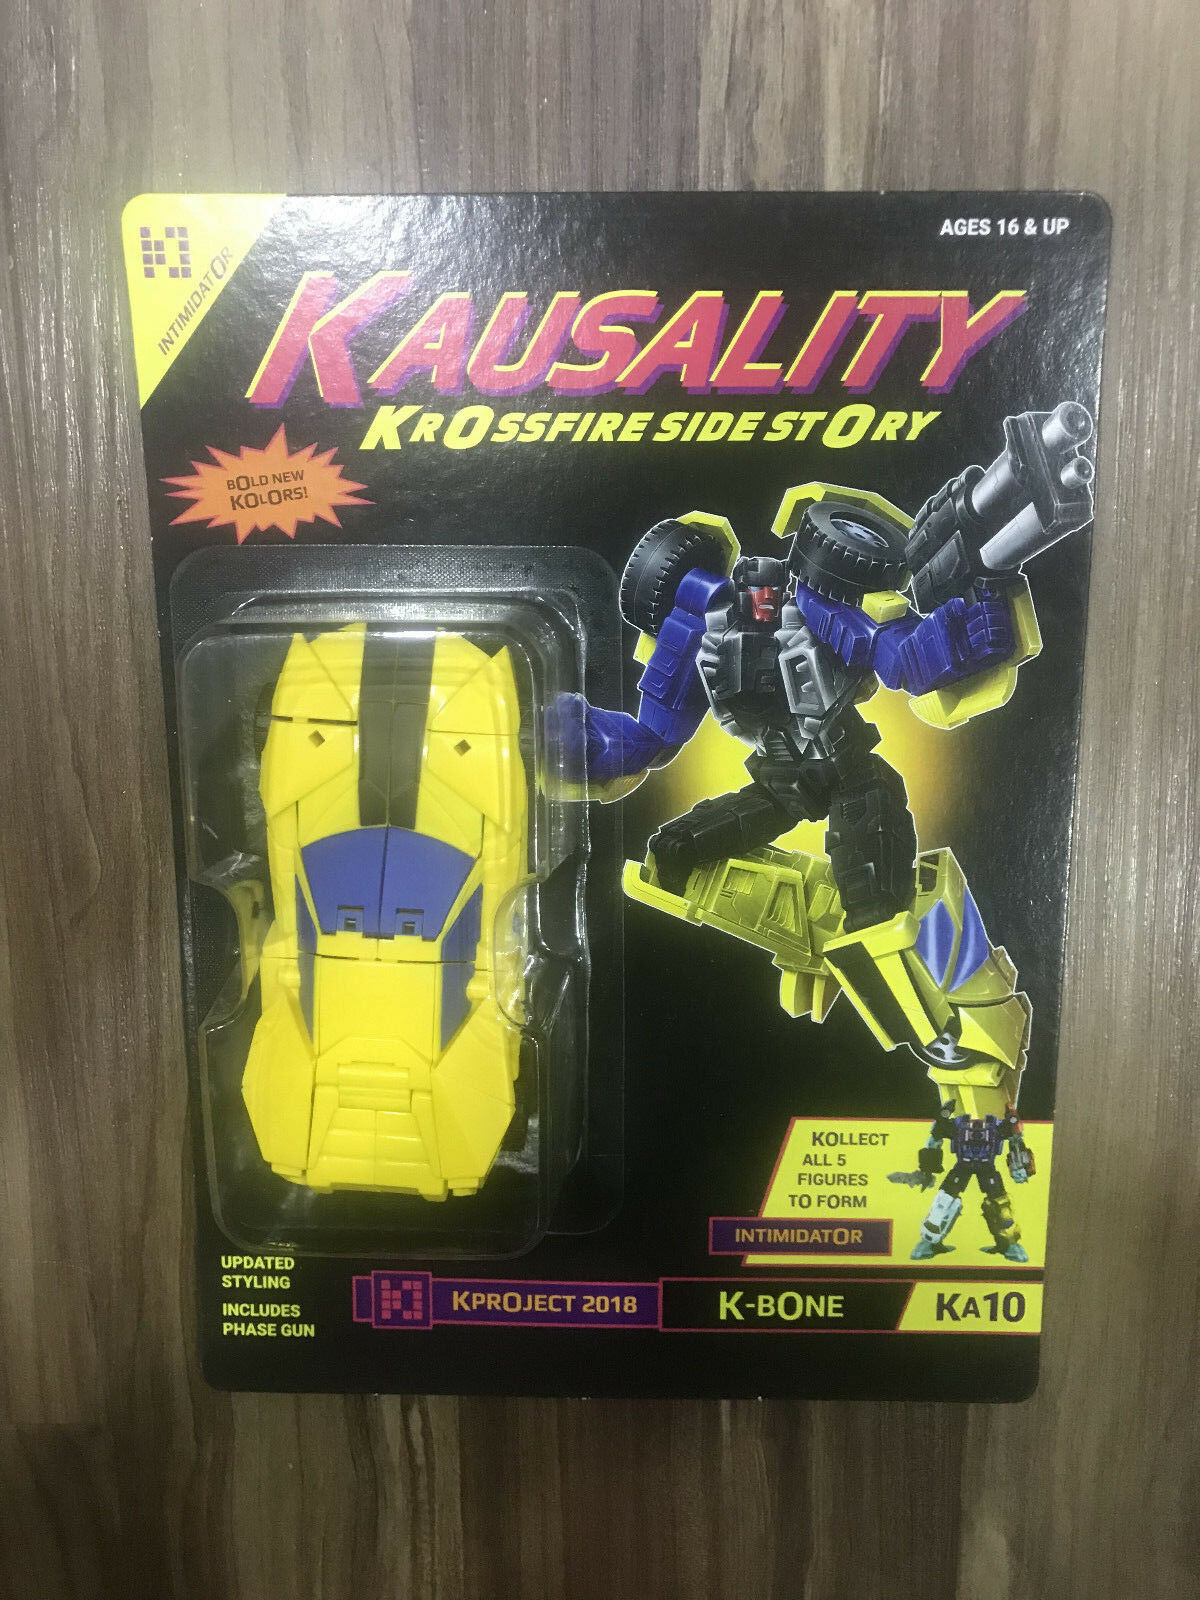 Transformers Fansproject Convention Kausality KA-10 K-Bone Uomoasor Dragstrip